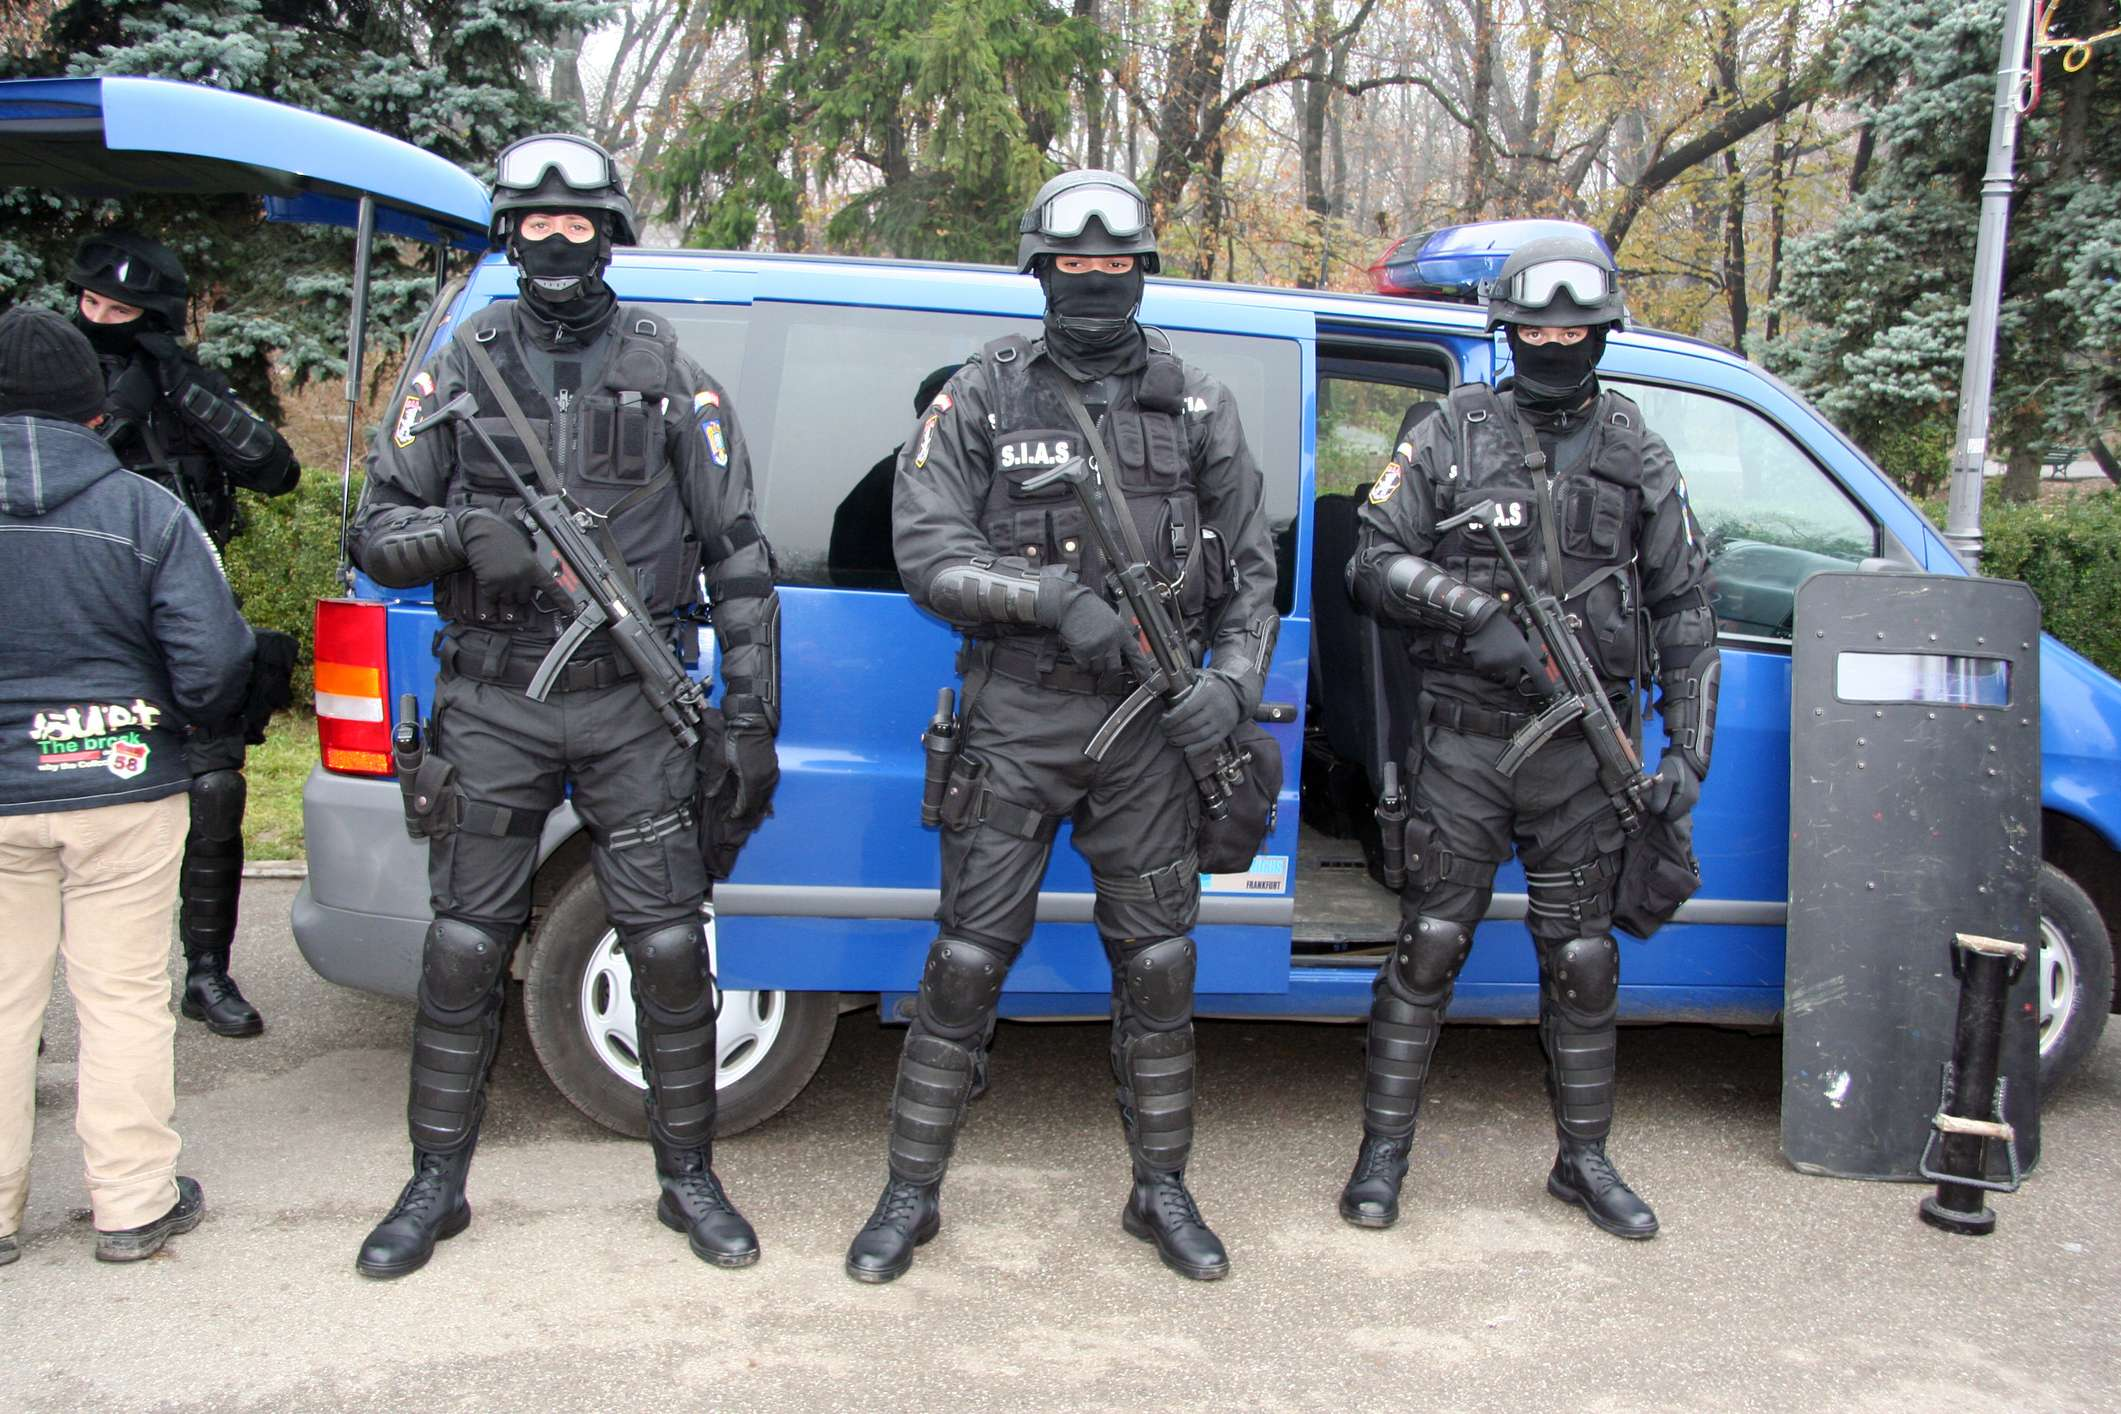 2015 was a very good year for militarized police forces.